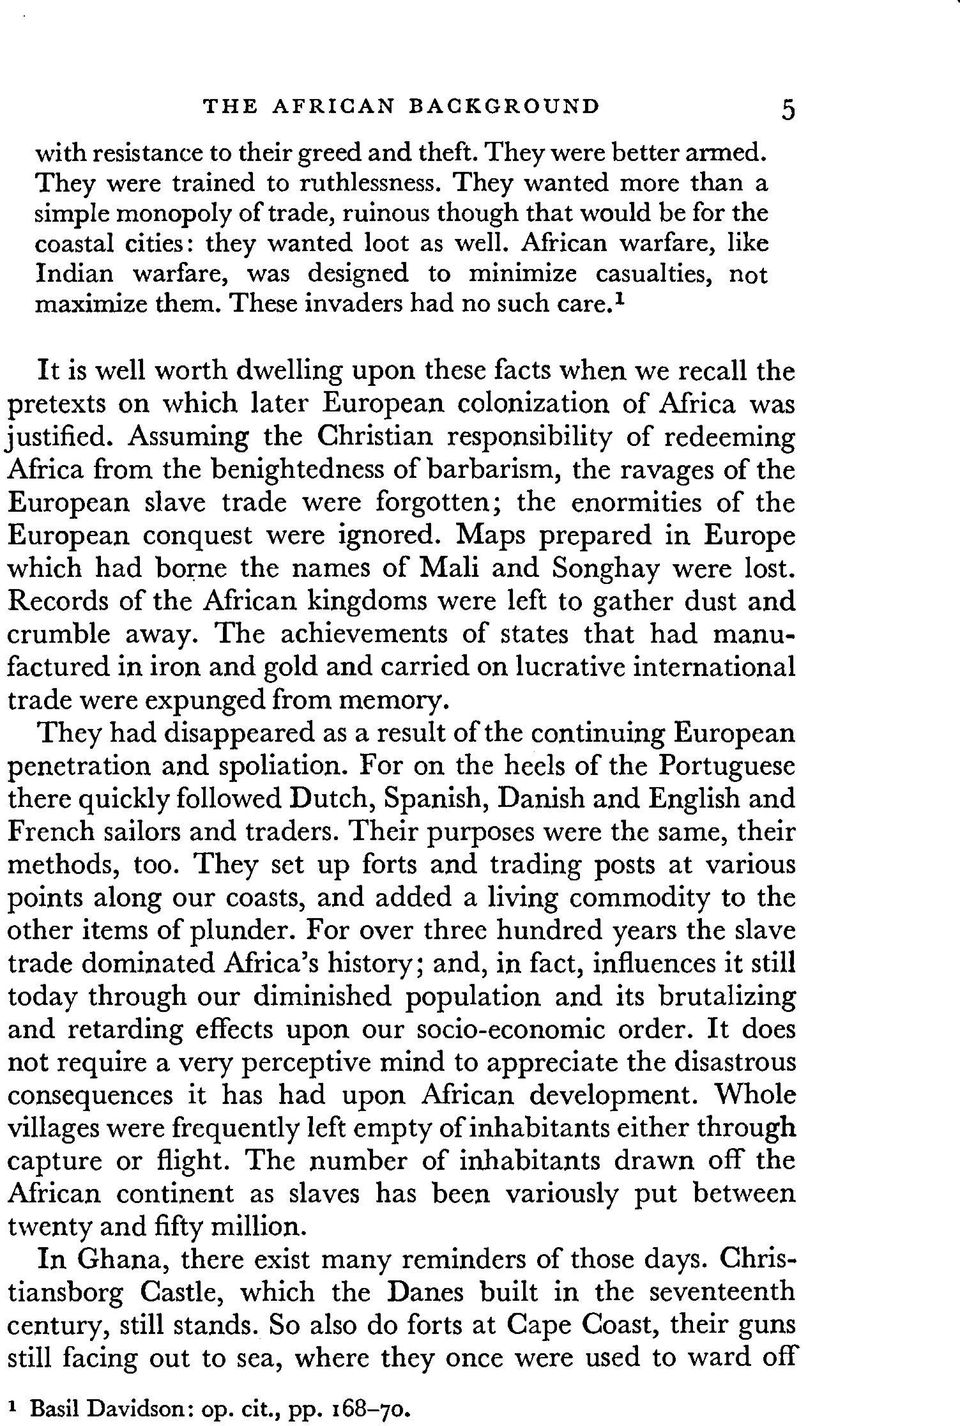 African warfare, like Indian warfare, was designed to minimize casualties, not maximize them. These invaders had no such care.